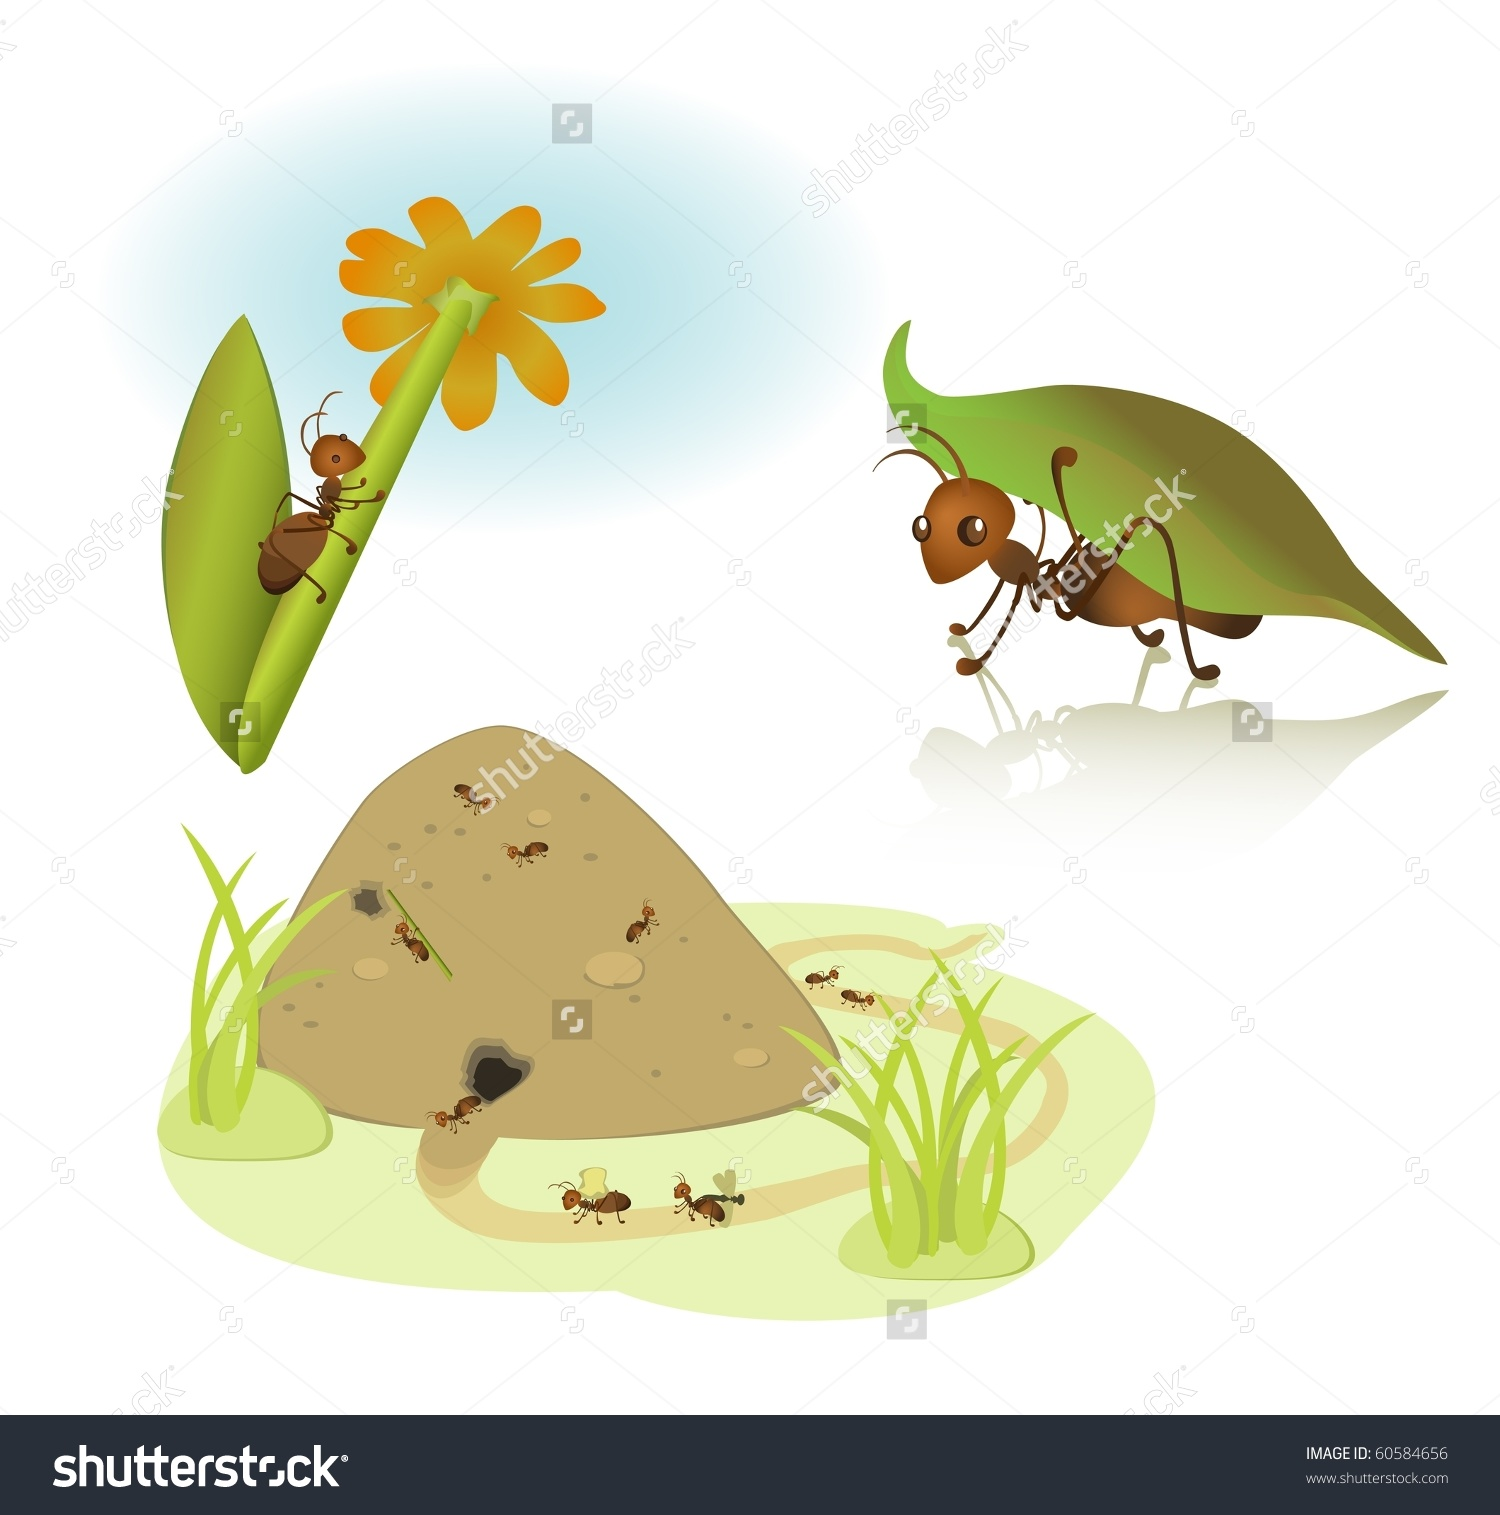 Ant home clipart.